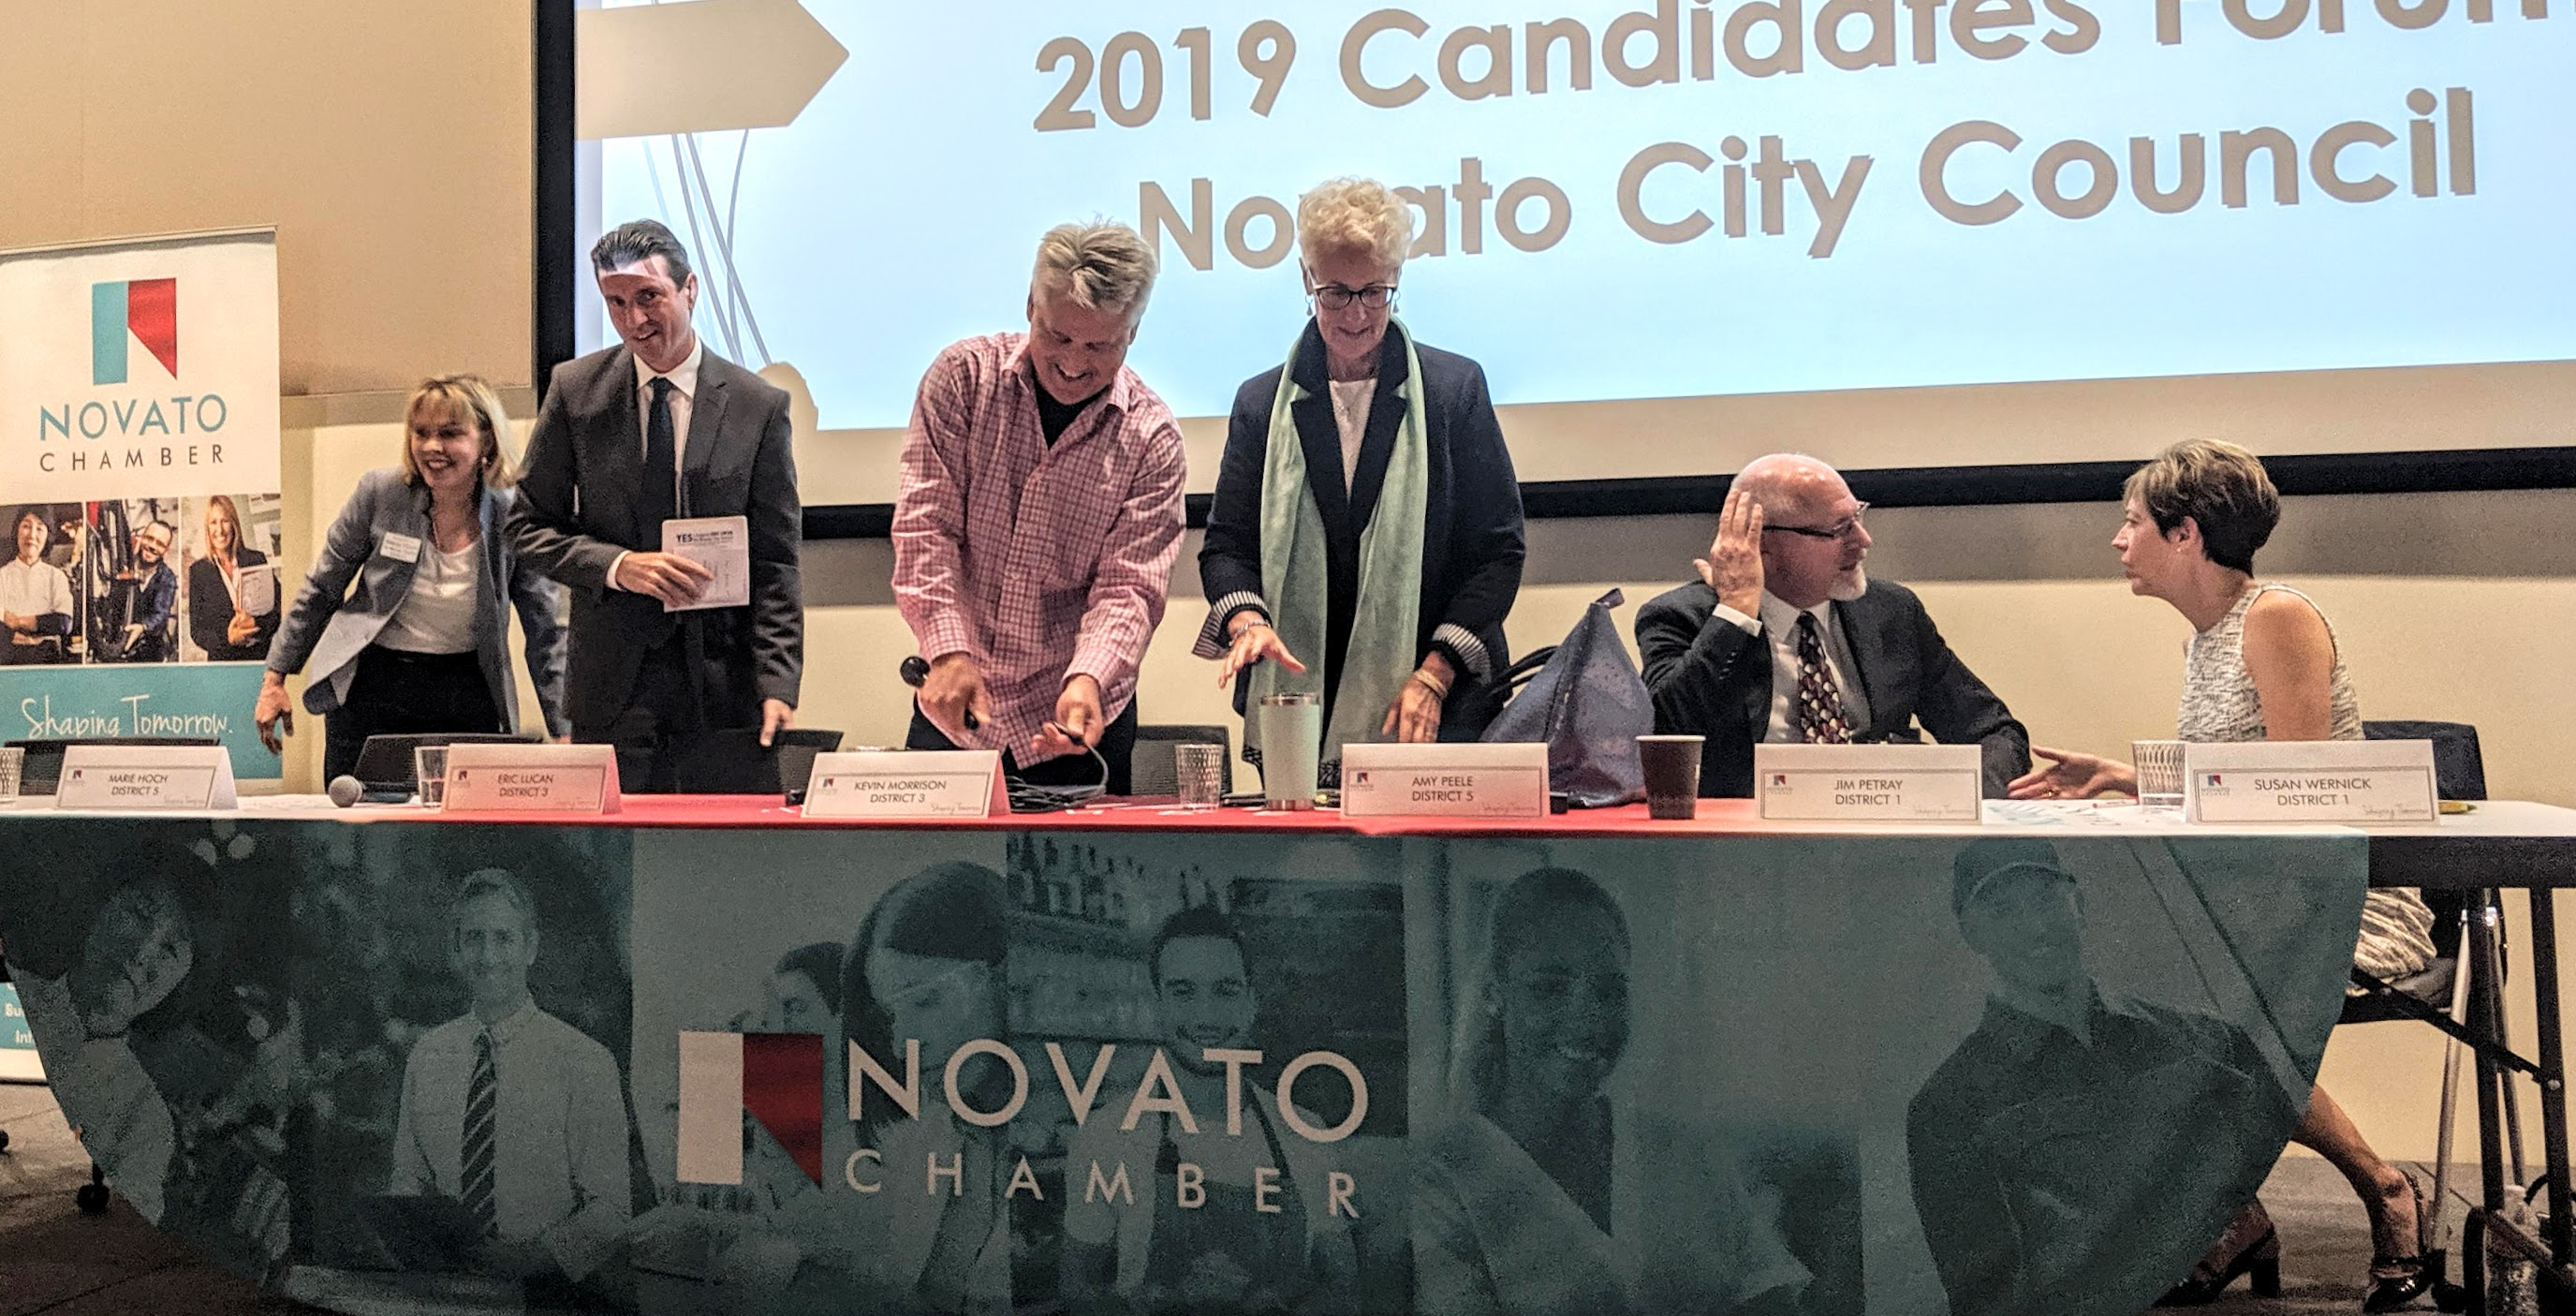 2019 City Council Elections for Novato Novato Chamber of Commerce Candidates